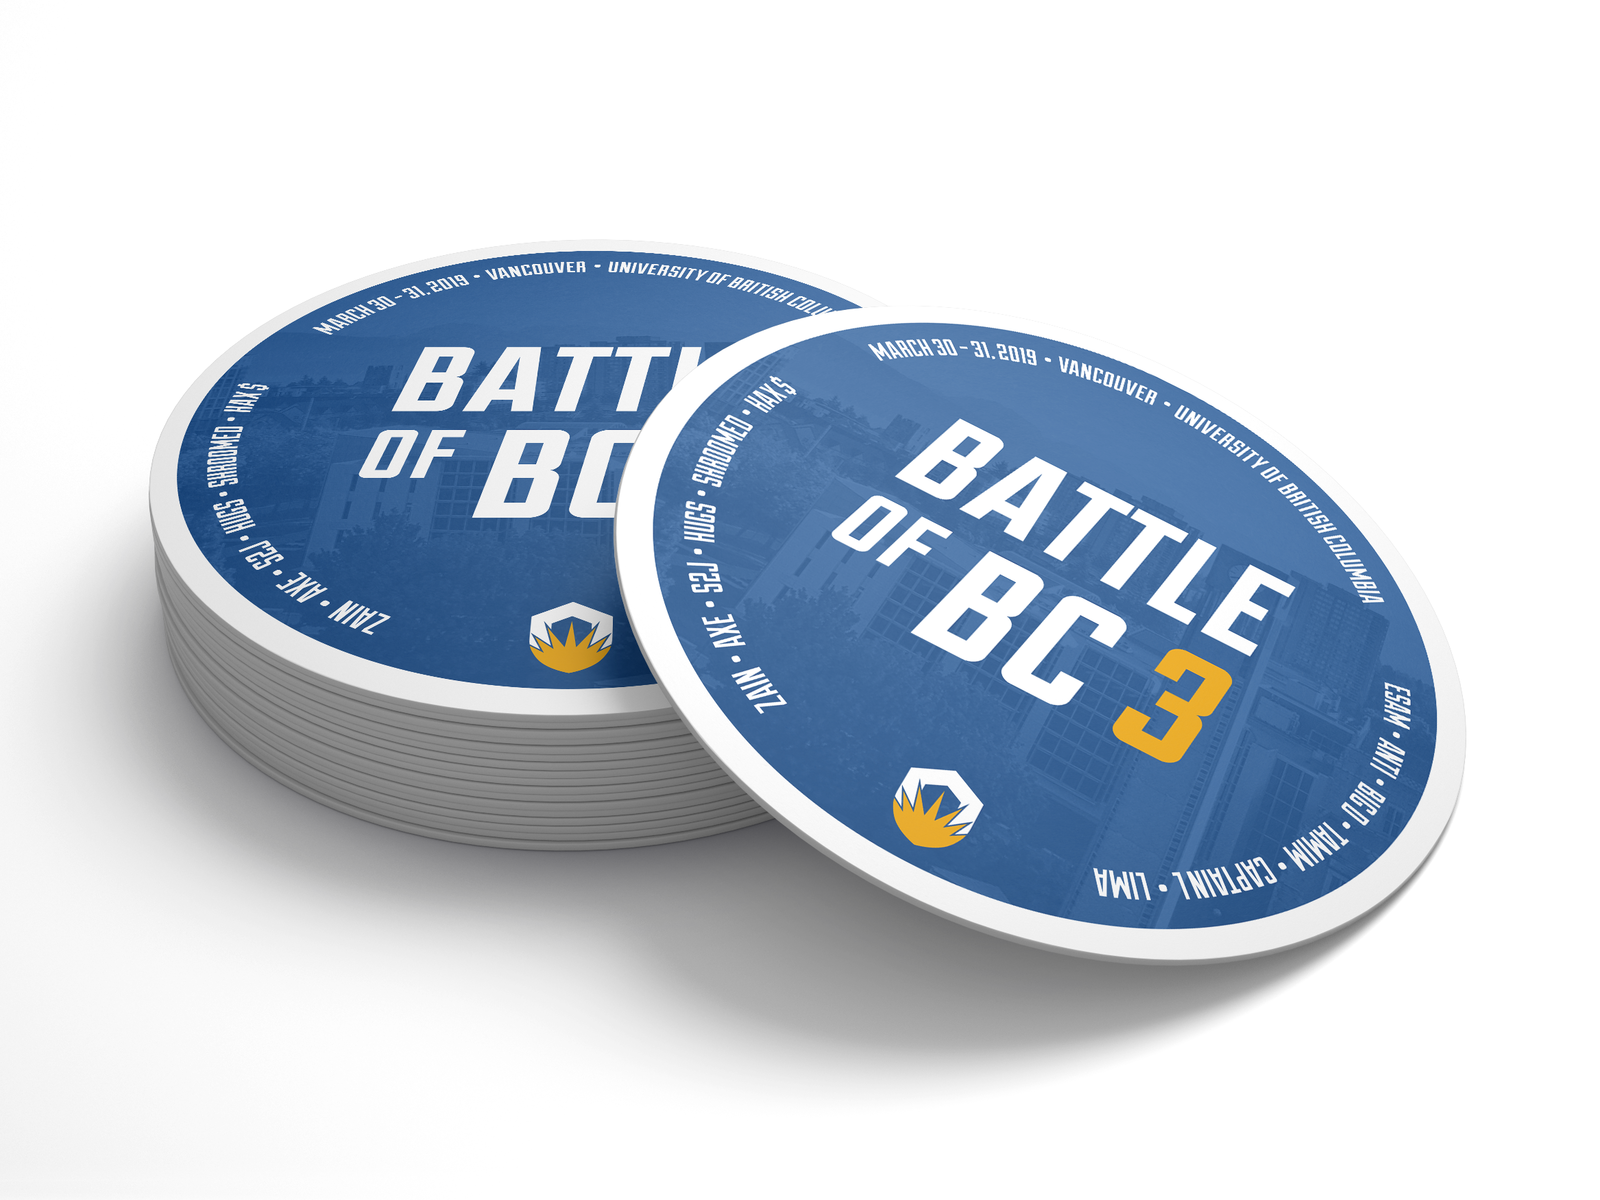 Battle Of Bc 3 Coasters By Paul Boici On Dribbble